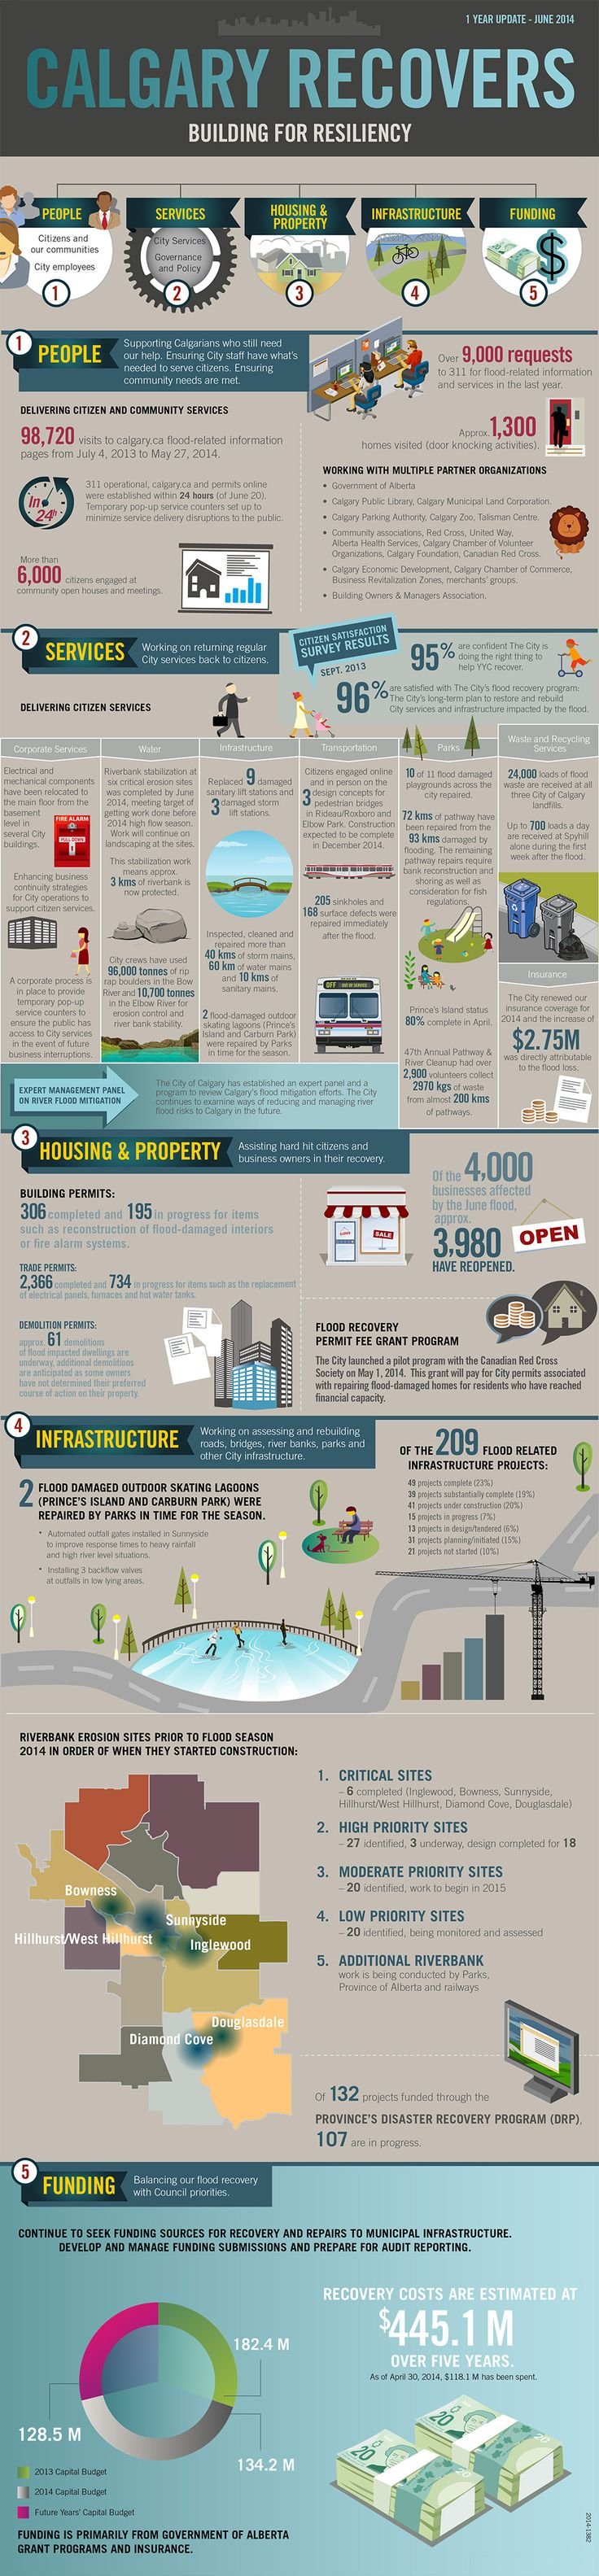 The City of Calgary - Calgary flood 2013 infographic - One year later